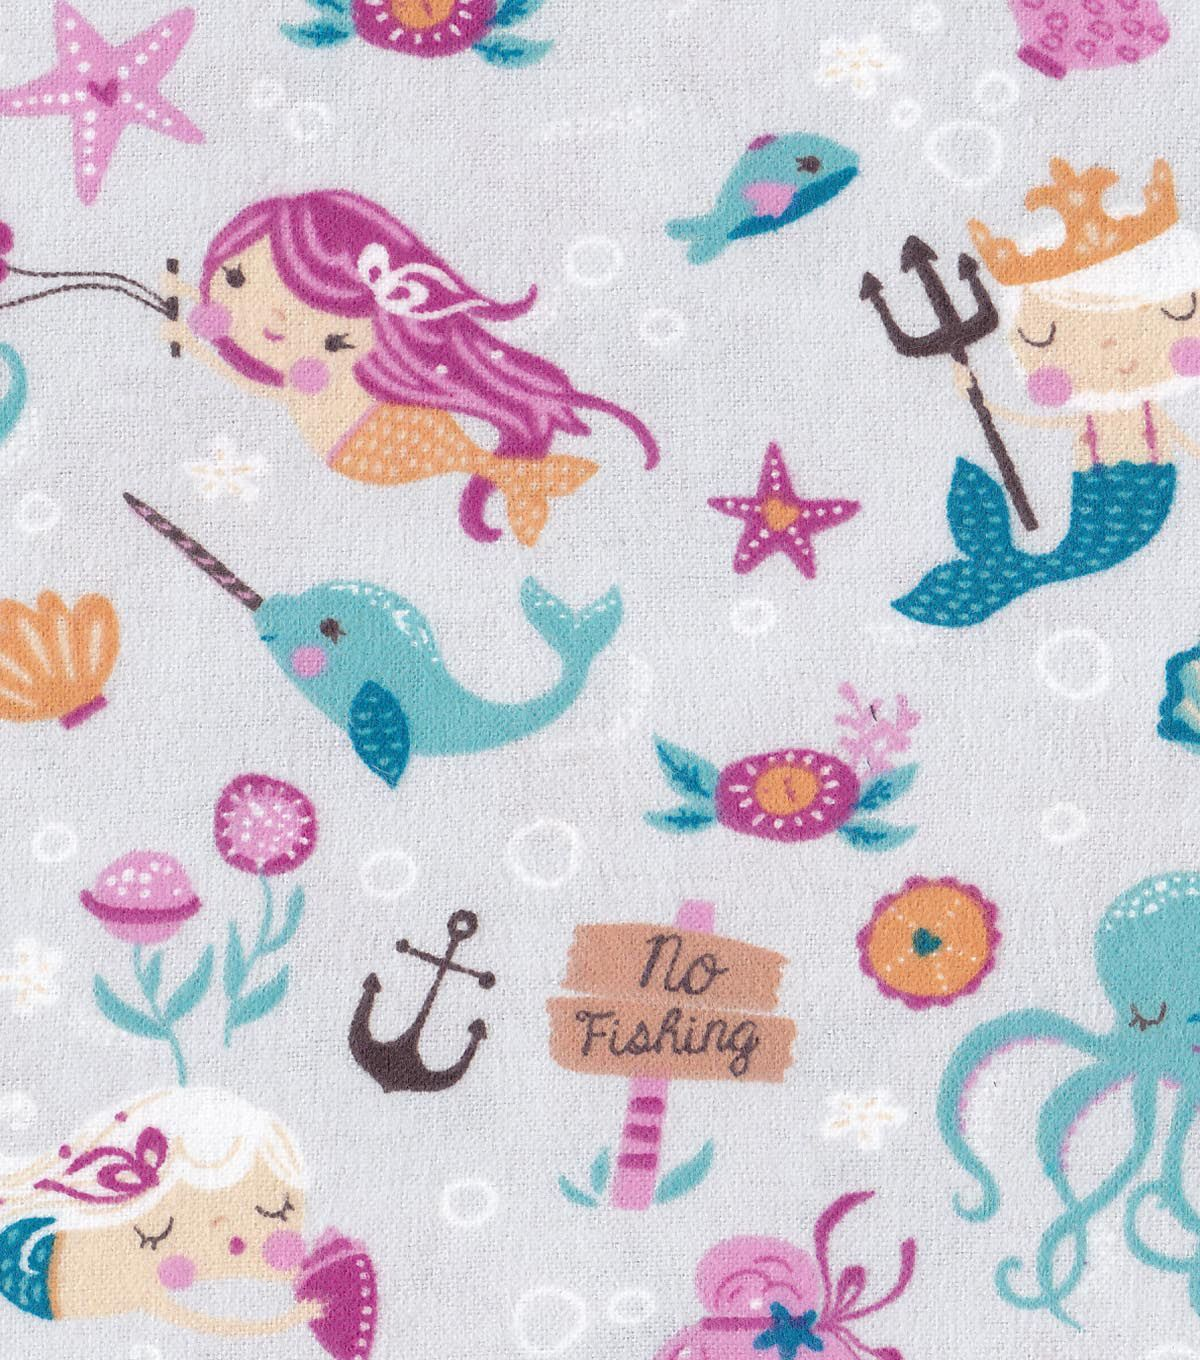 Snuggle Flannel Fabric Mermaid Friends Flannel Quilts